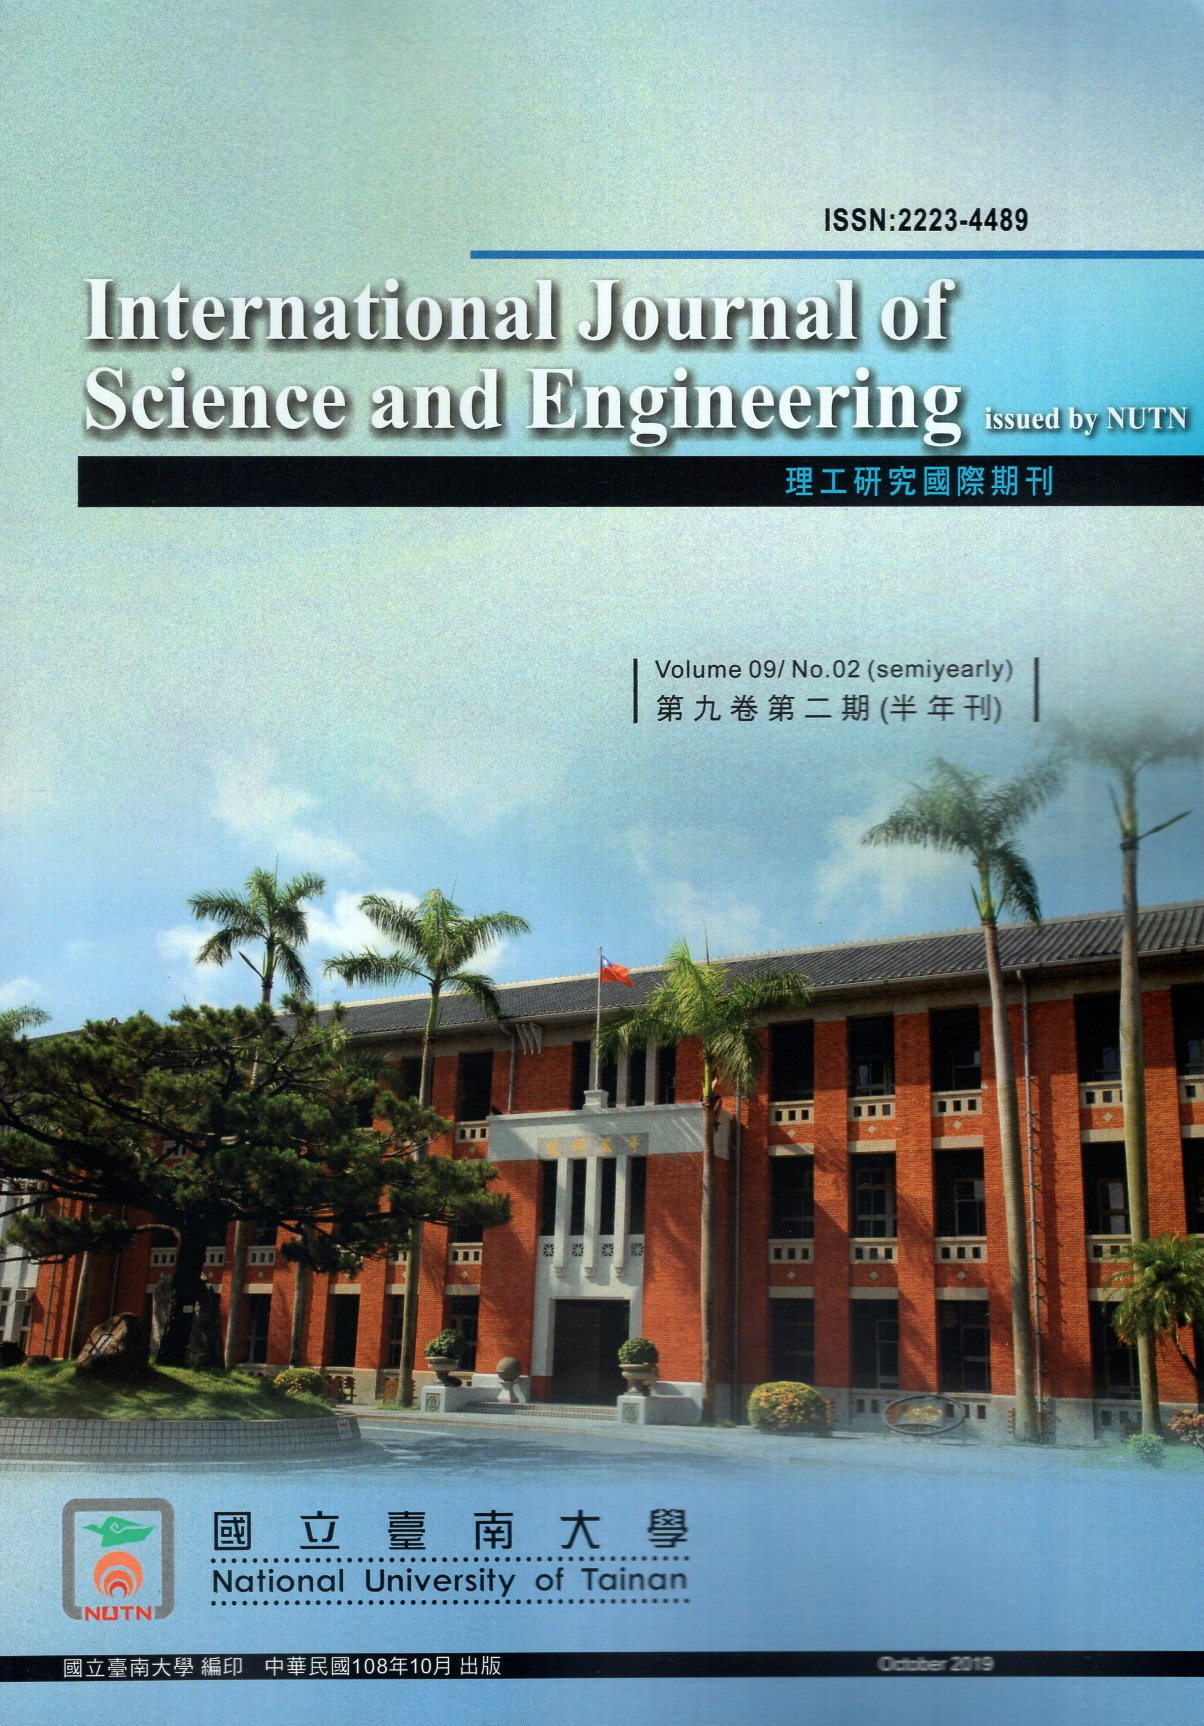 理工研究國際期刊(International Journal of Science and Engineering)-第09卷第2期(108/10)